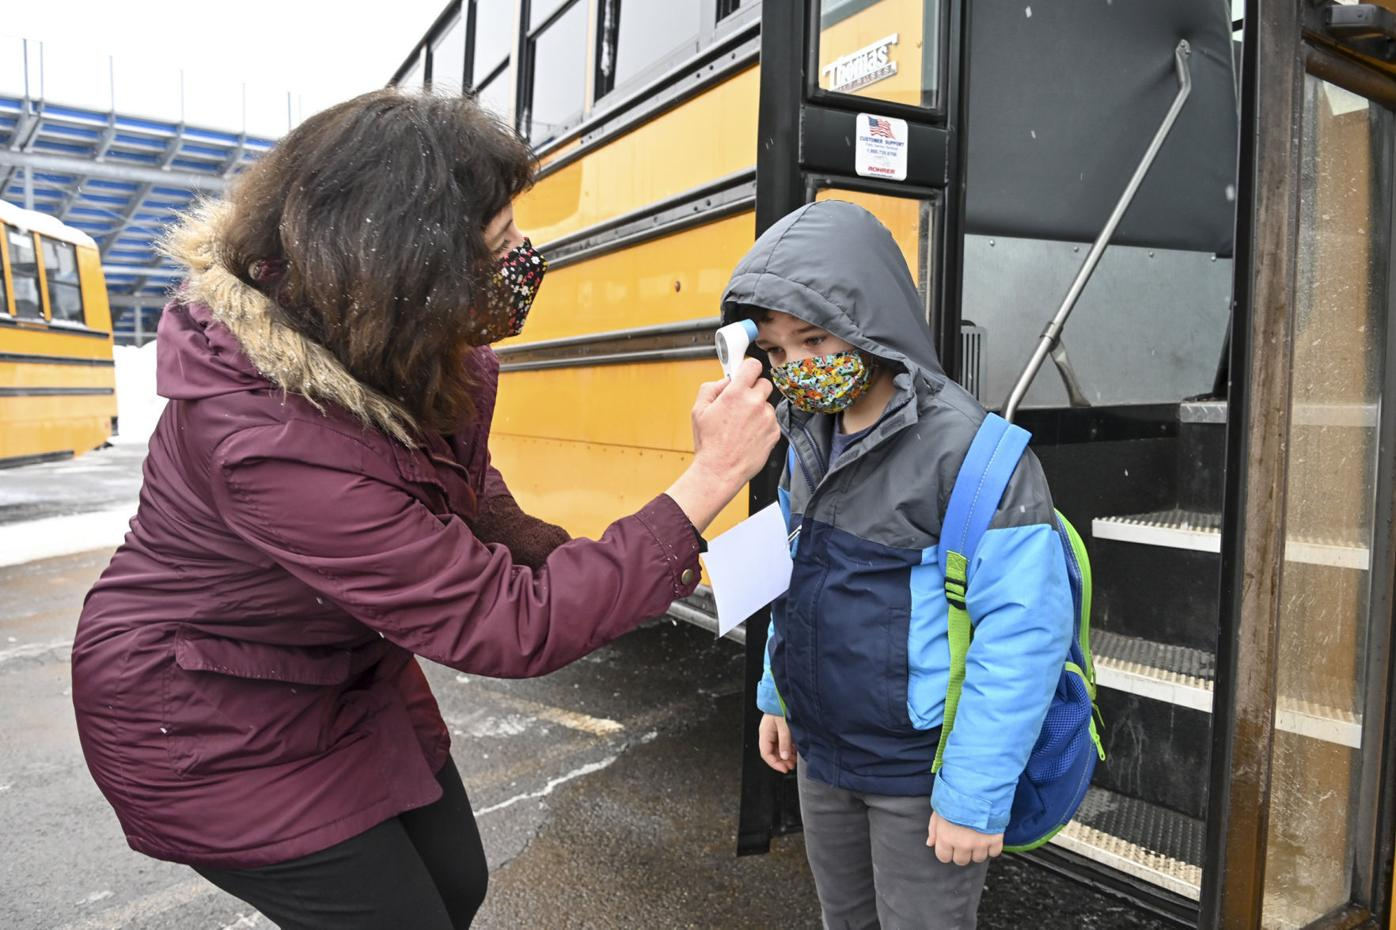 Valley View students return to classrooms for first time since March